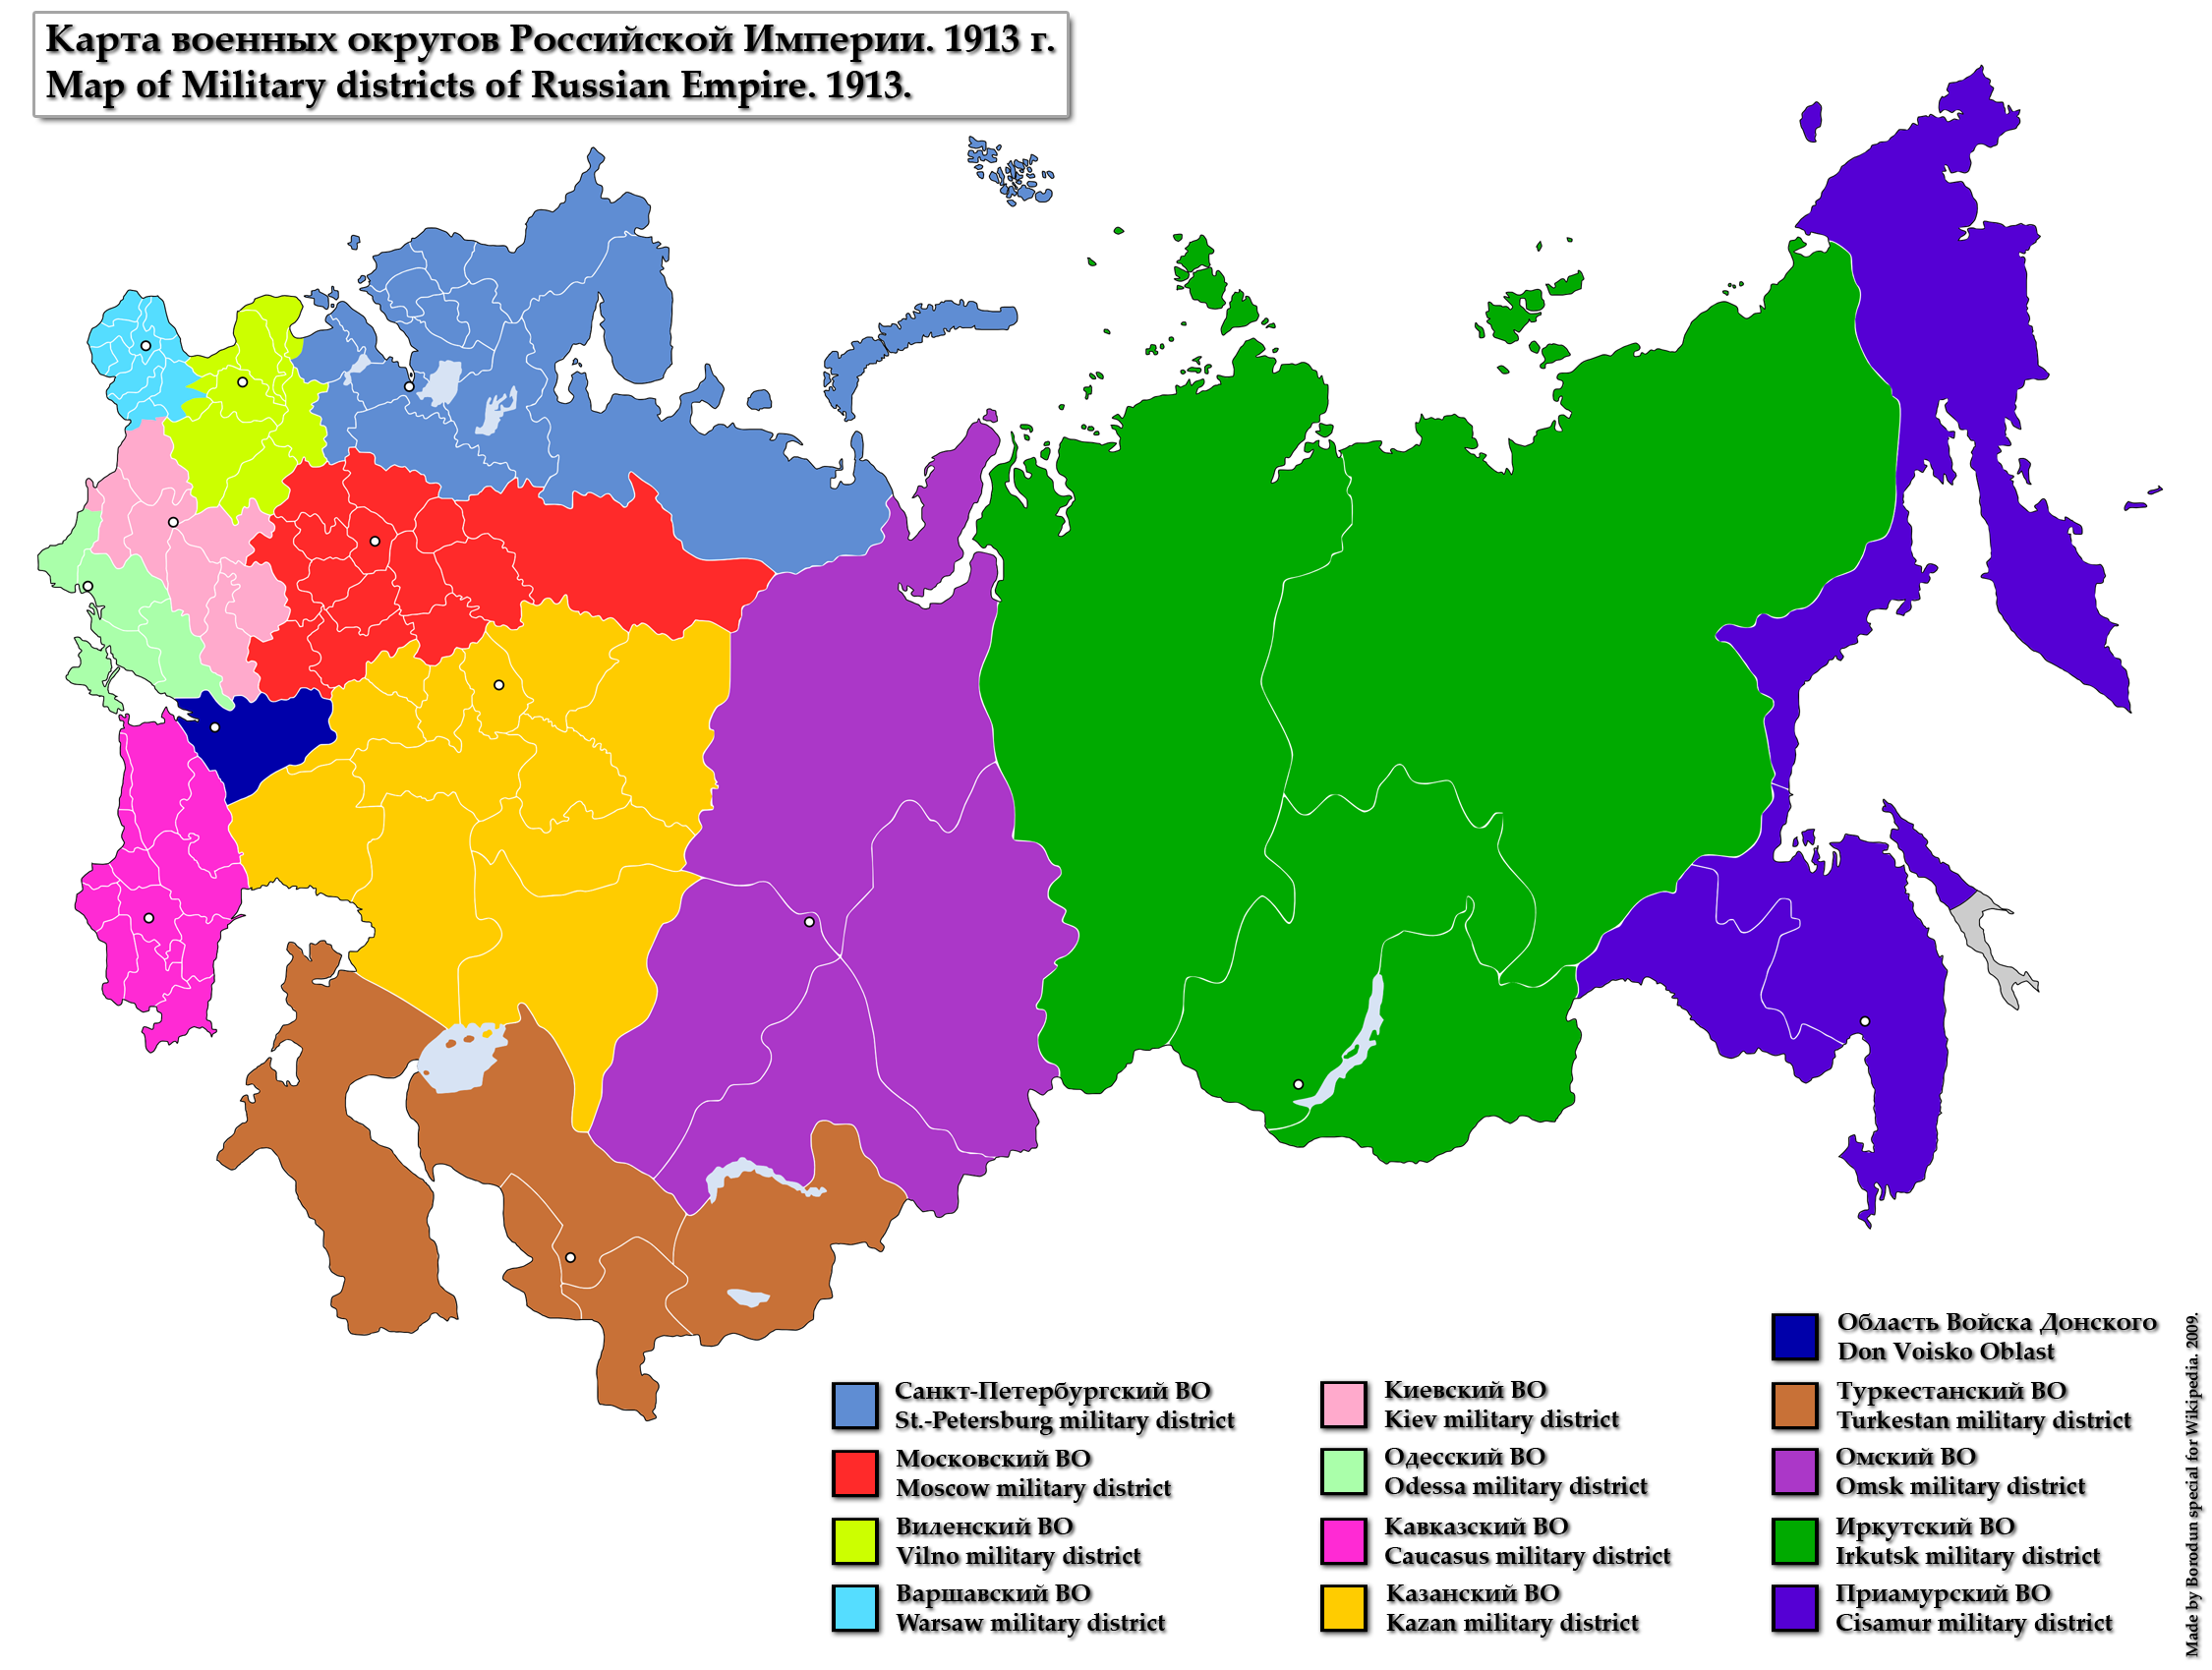 Datei:Map of Military Districts of Russian Empire 1913.png – Wikipedia